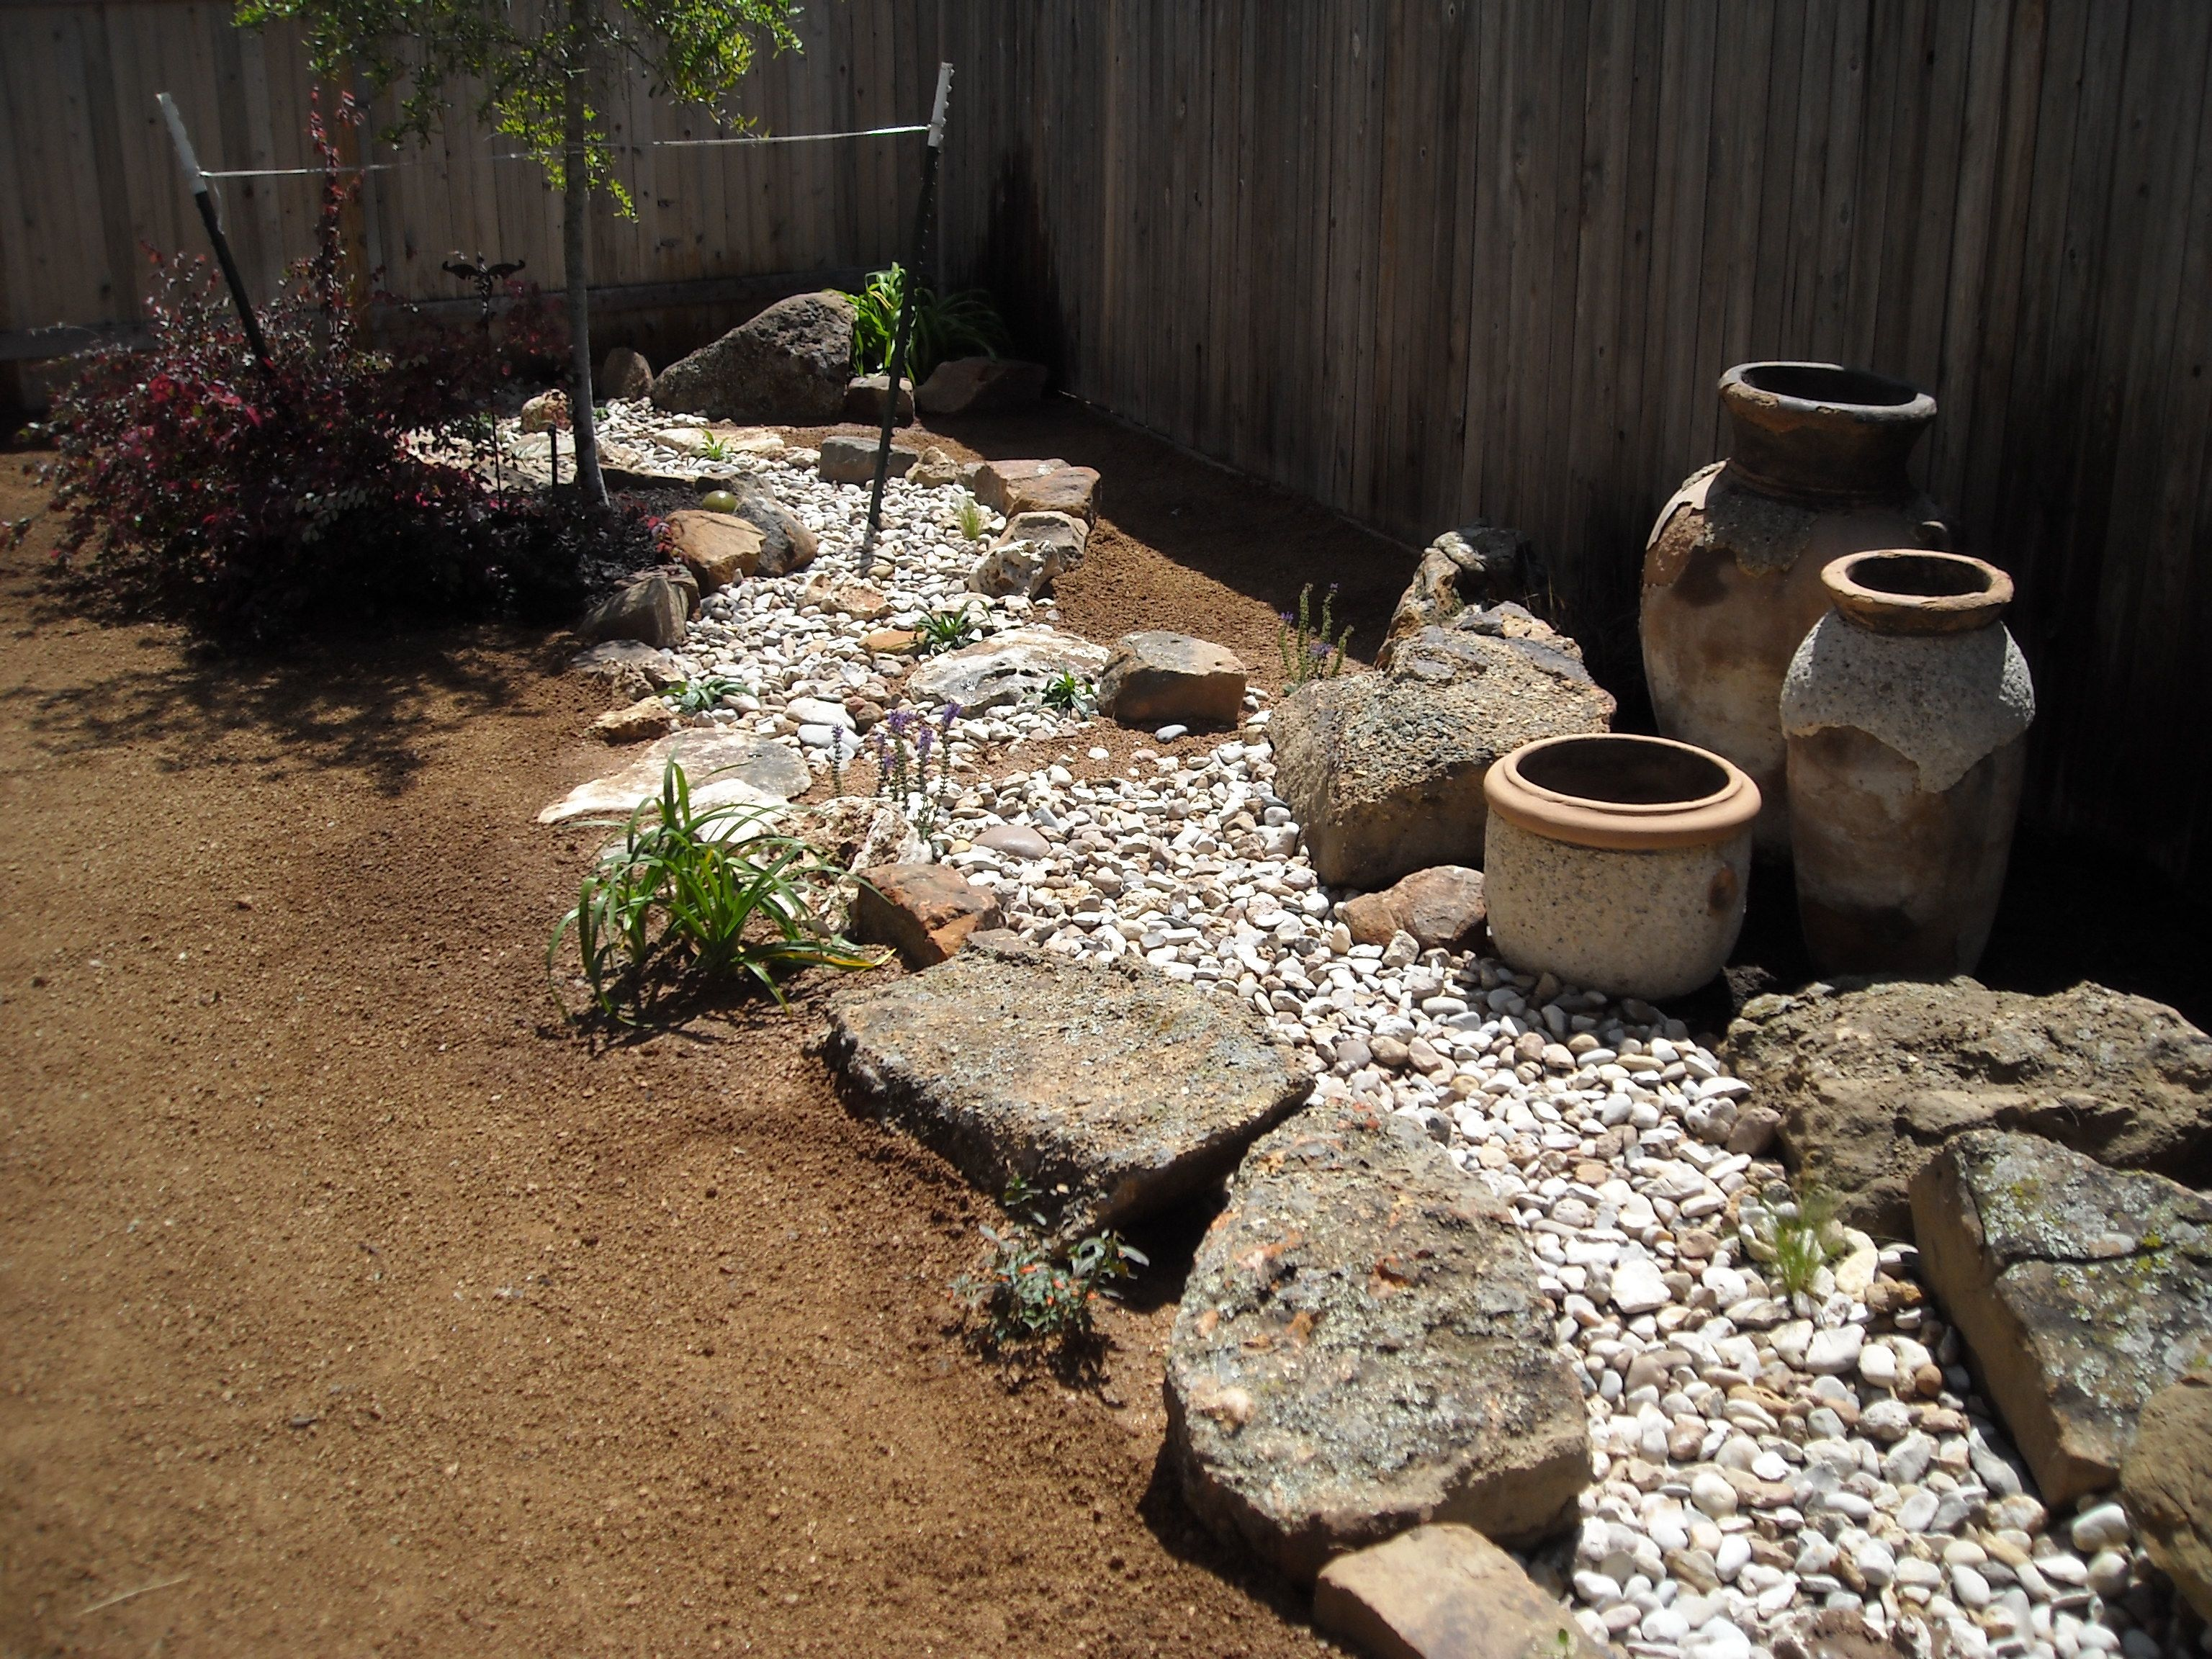 50 Super Easy Dry Creek Landscaping Ideas You Can Make! | Dry creek